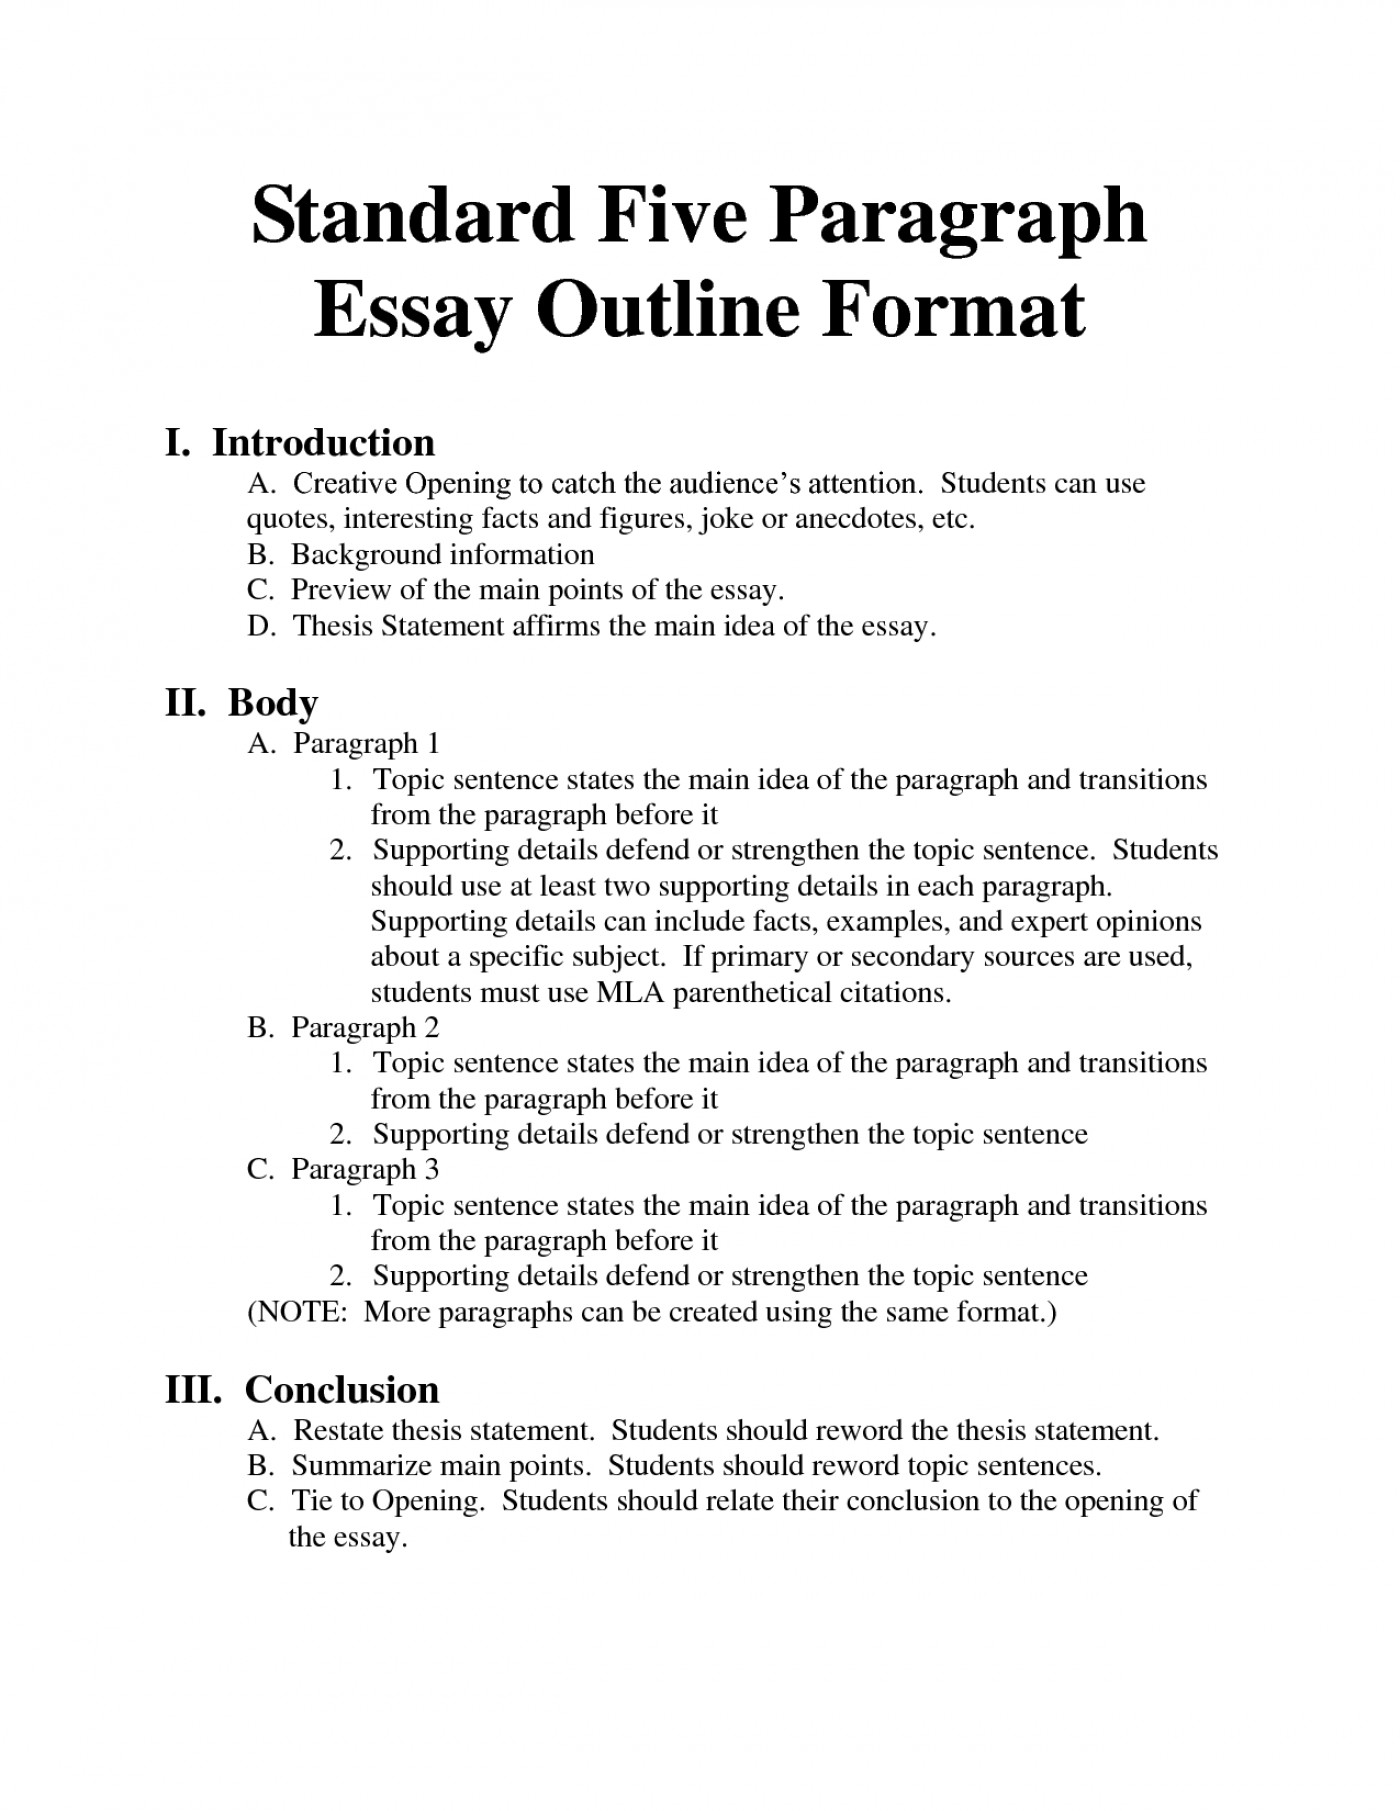 022 Easy Research Paper Topics Fantastic For High School Students Reddit To Write About 1400